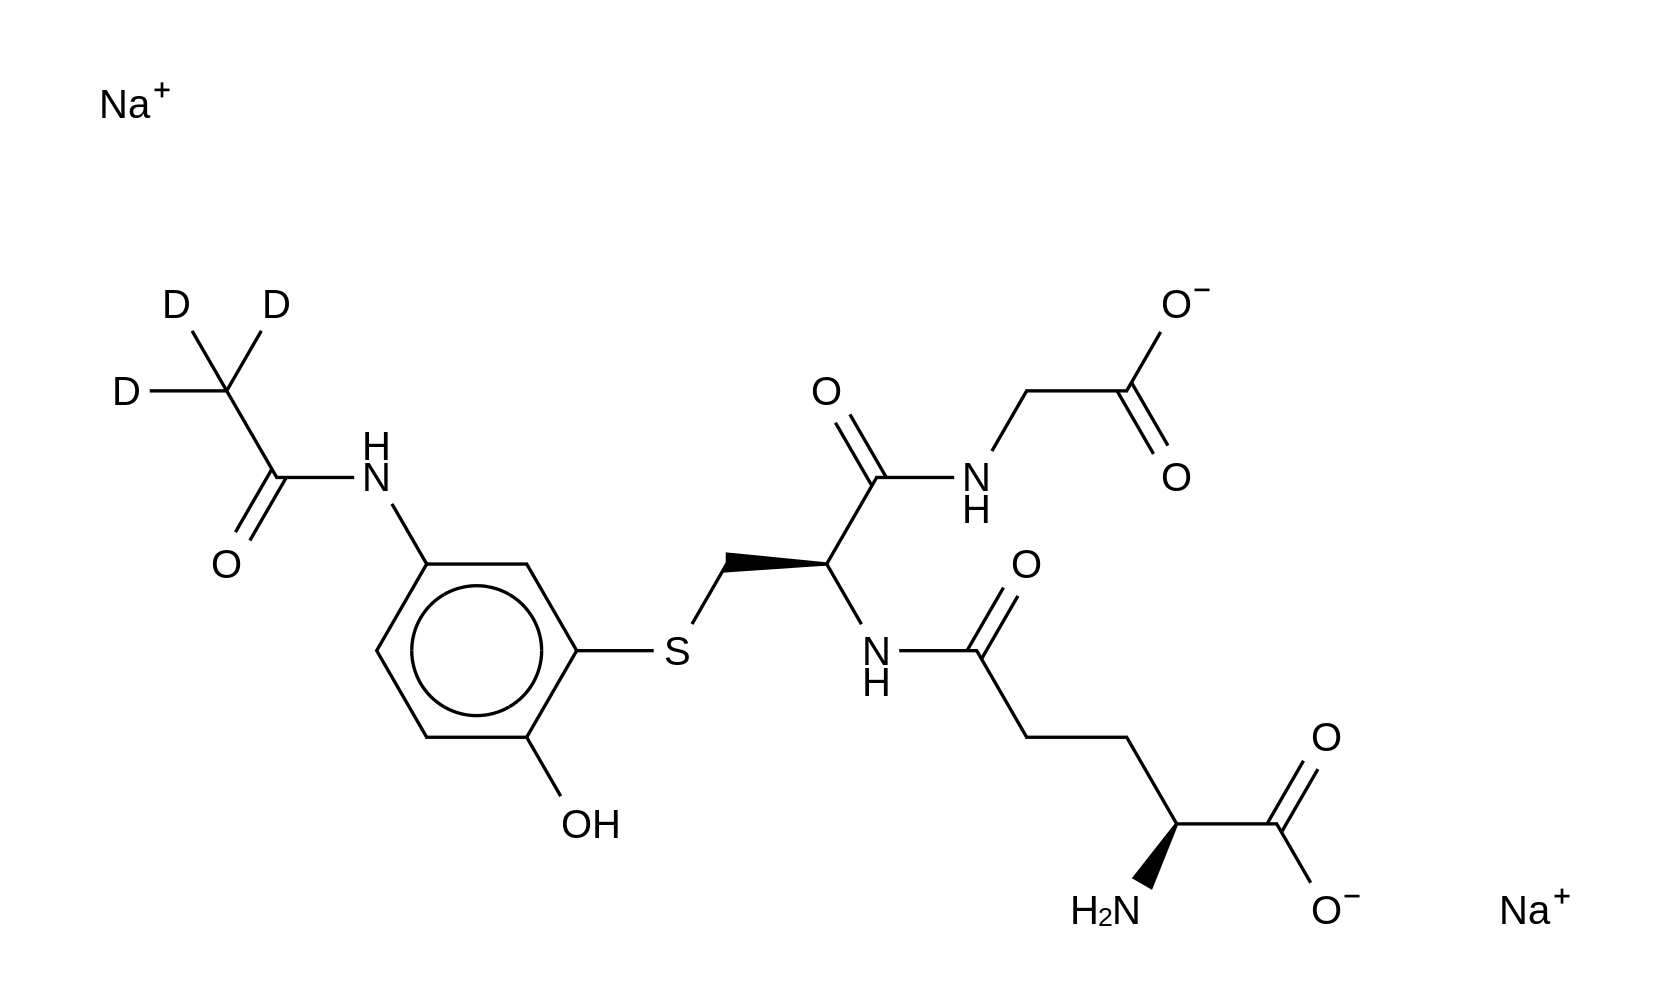 Acetaminophen glutathione-d<sub>3</sub> disodium salt